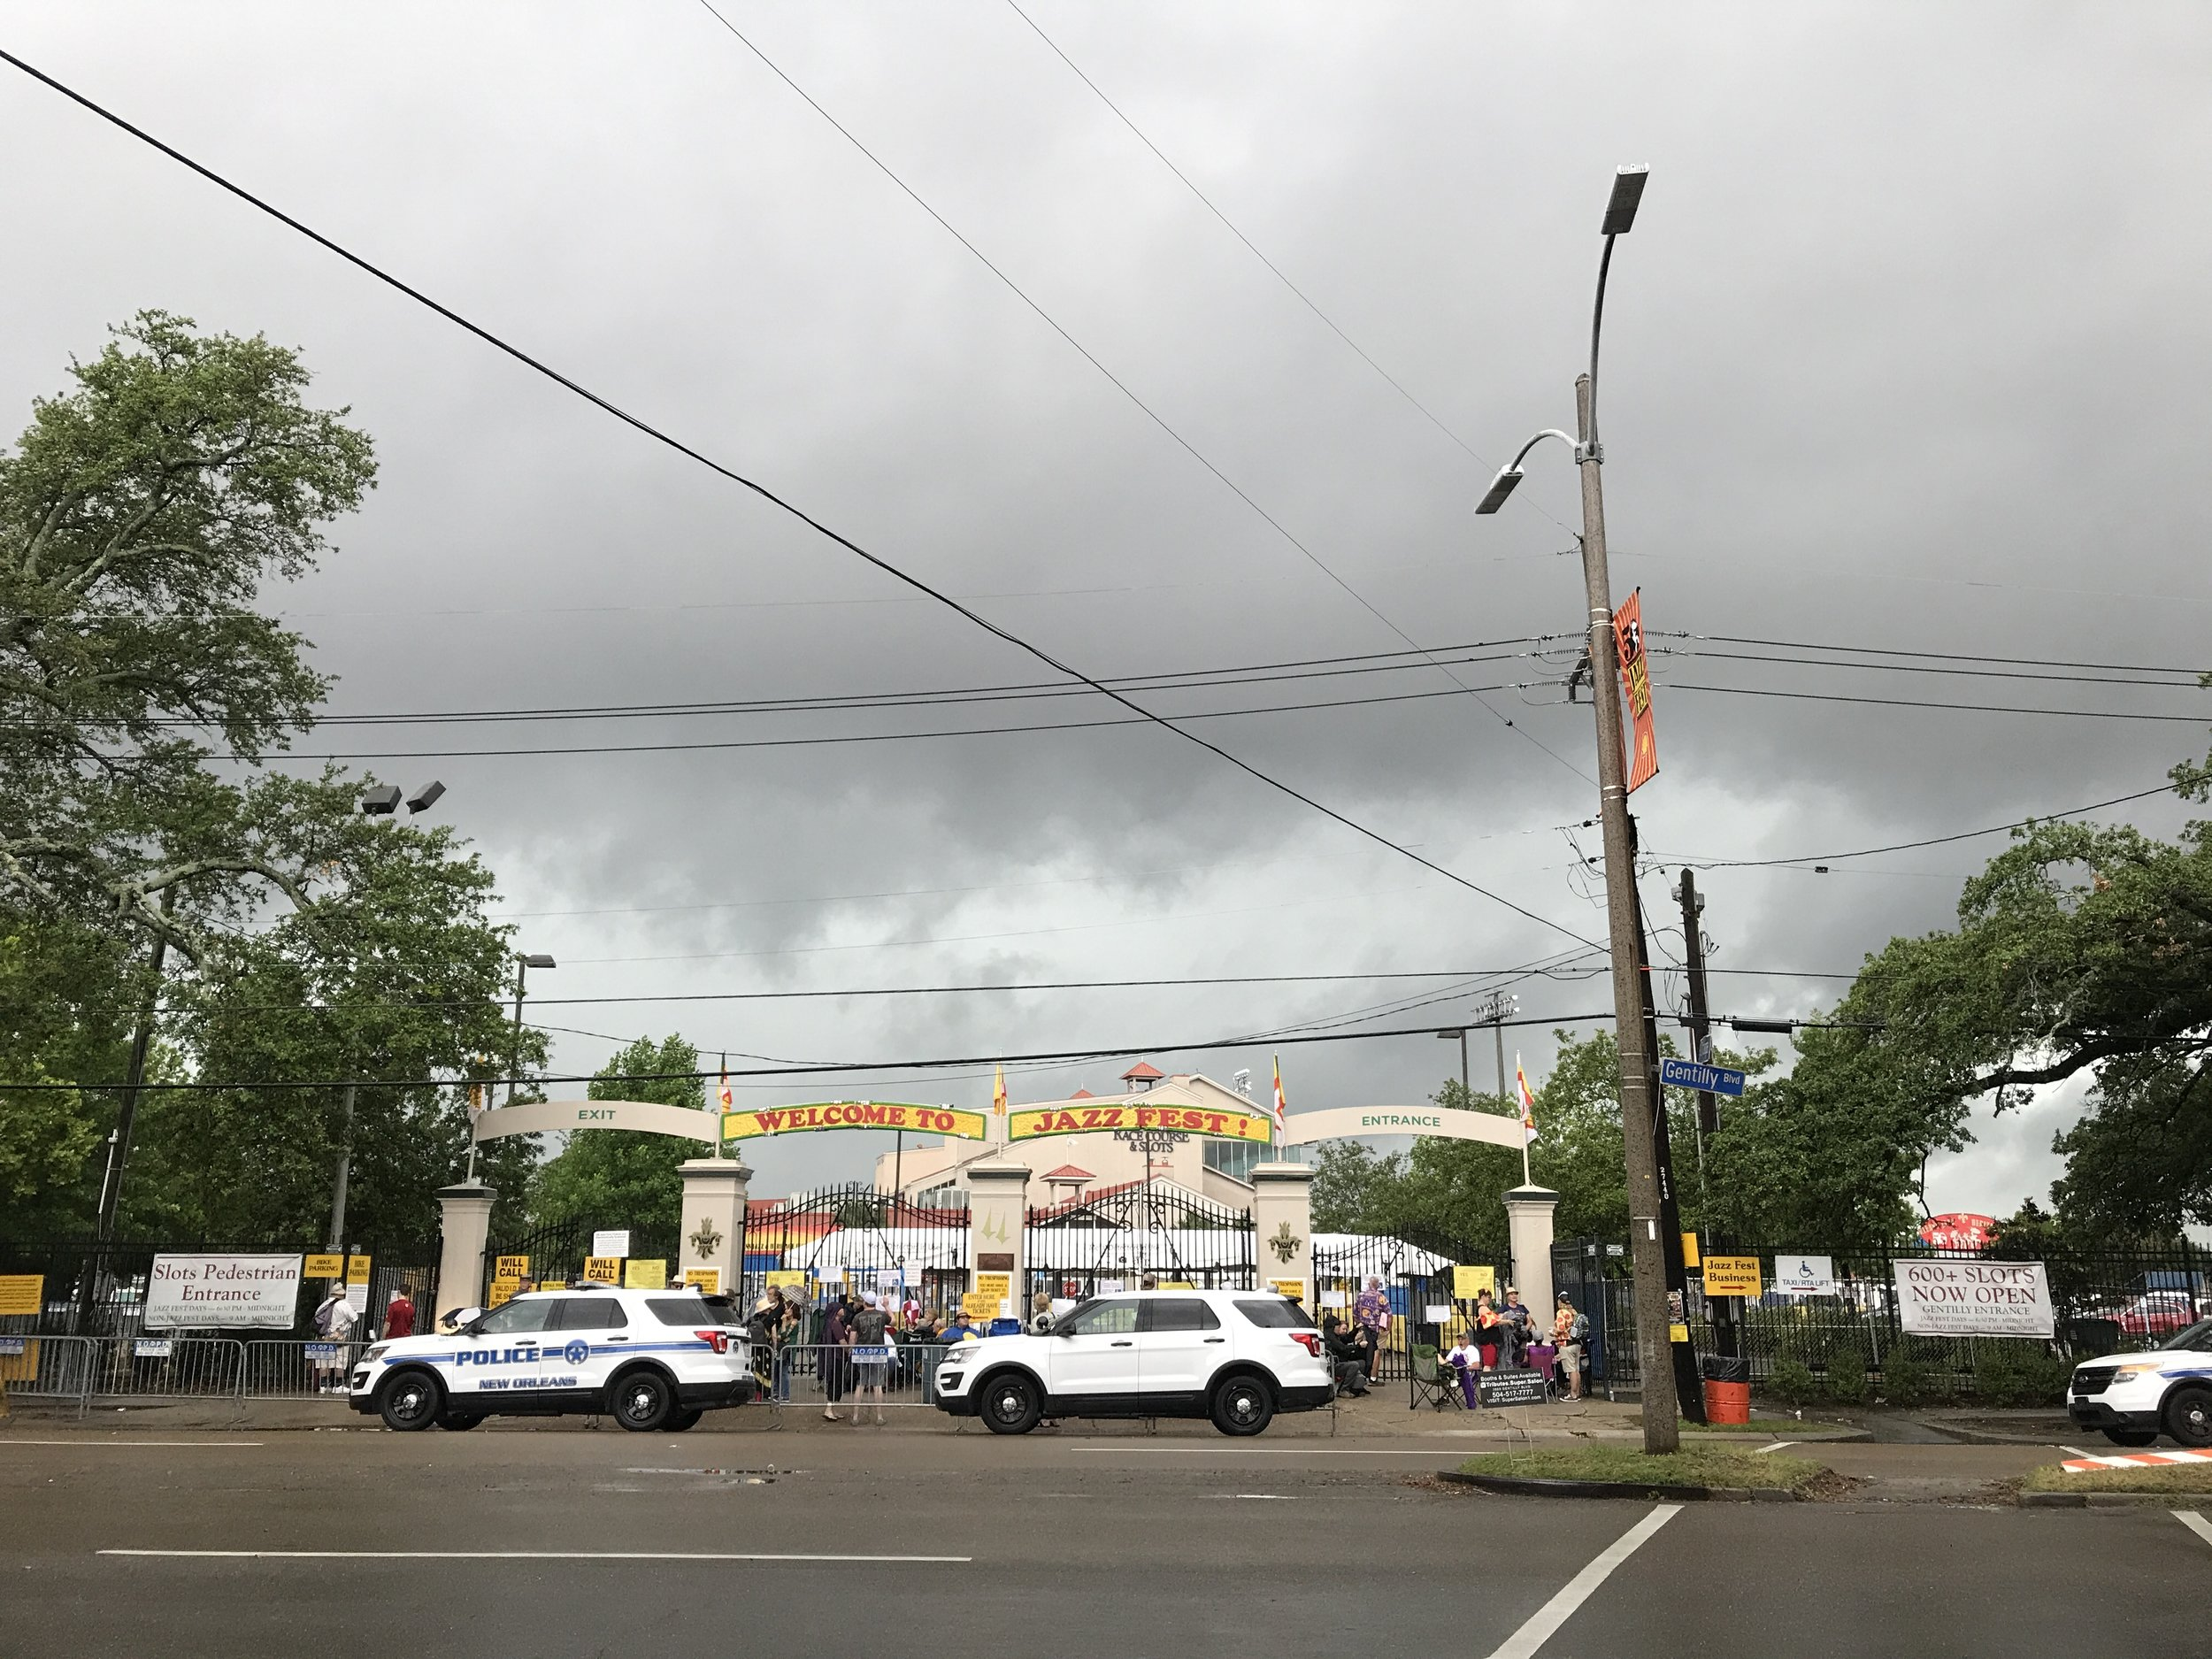 The storm preventing Jazz Fest from starting